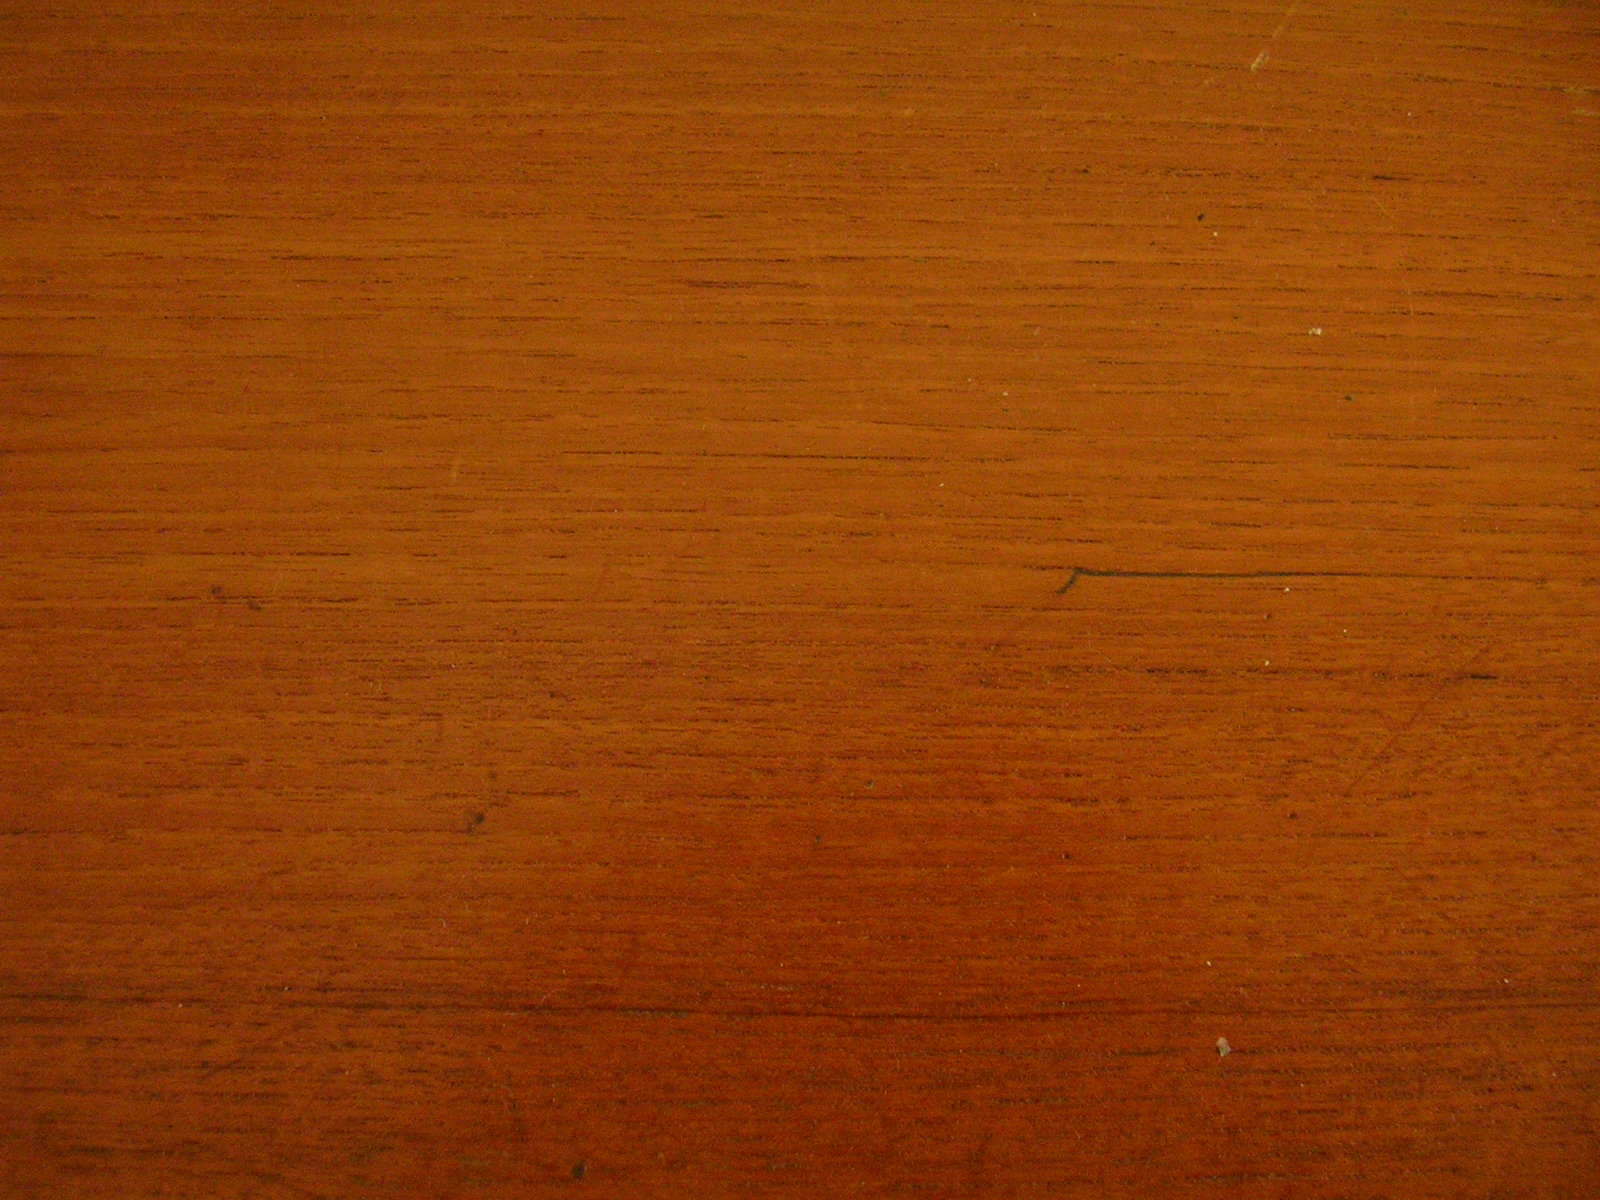 Pool table wood texture - Desk Texture Image